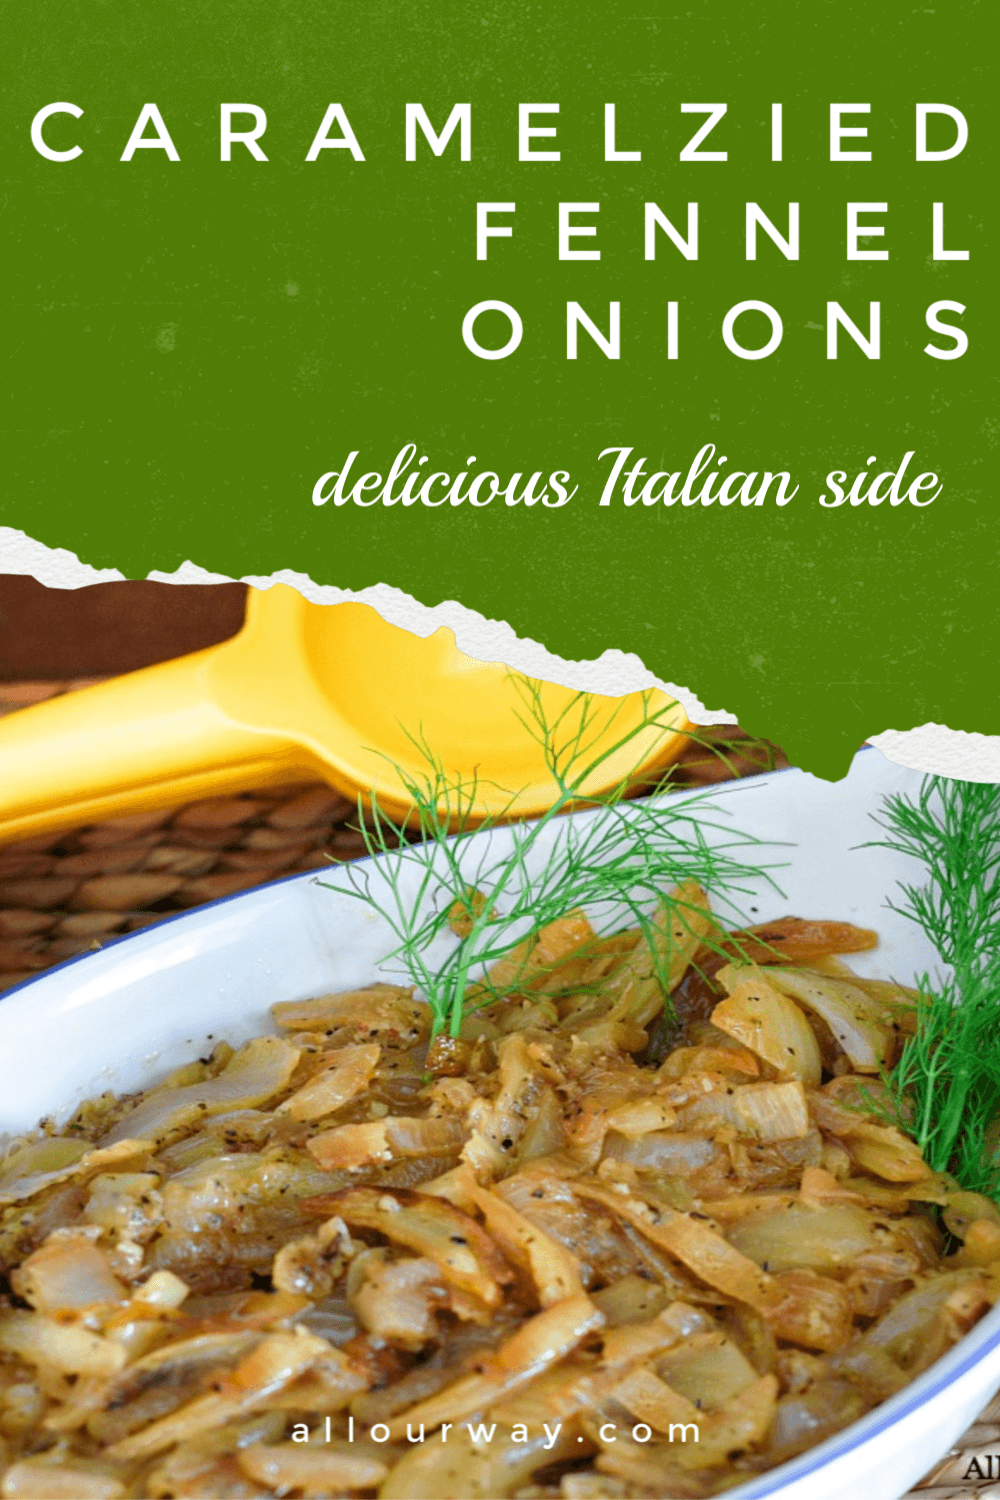 Slowly sautéed onions and fennel until they are caramelized and seasoned with lemon, parmesan and herbs. A delicious Italian side dish that is ideal served with chicken or pork.